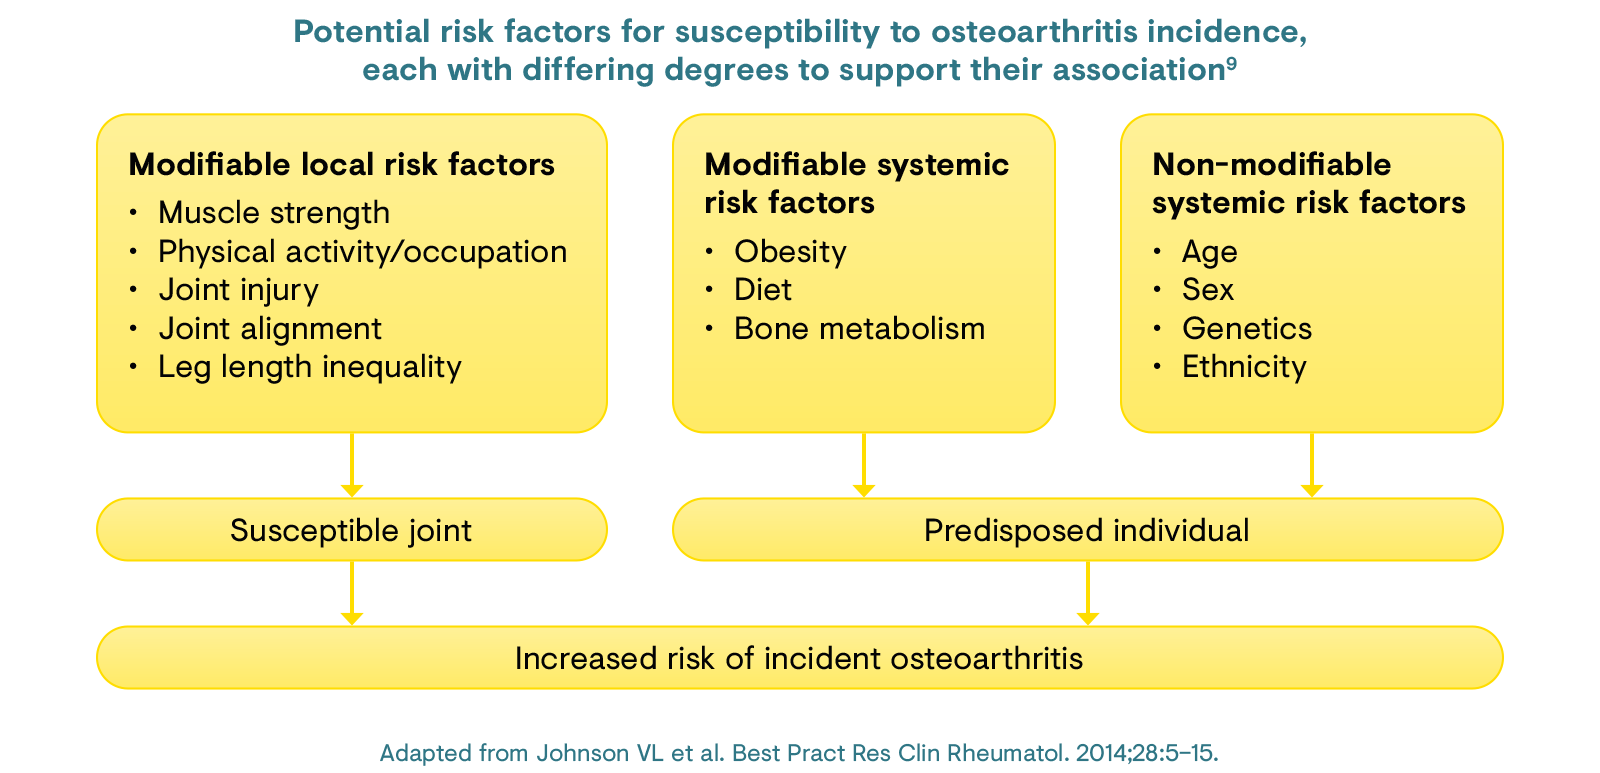 Potential risk factors for susceptibility to osteoarthritis incidence